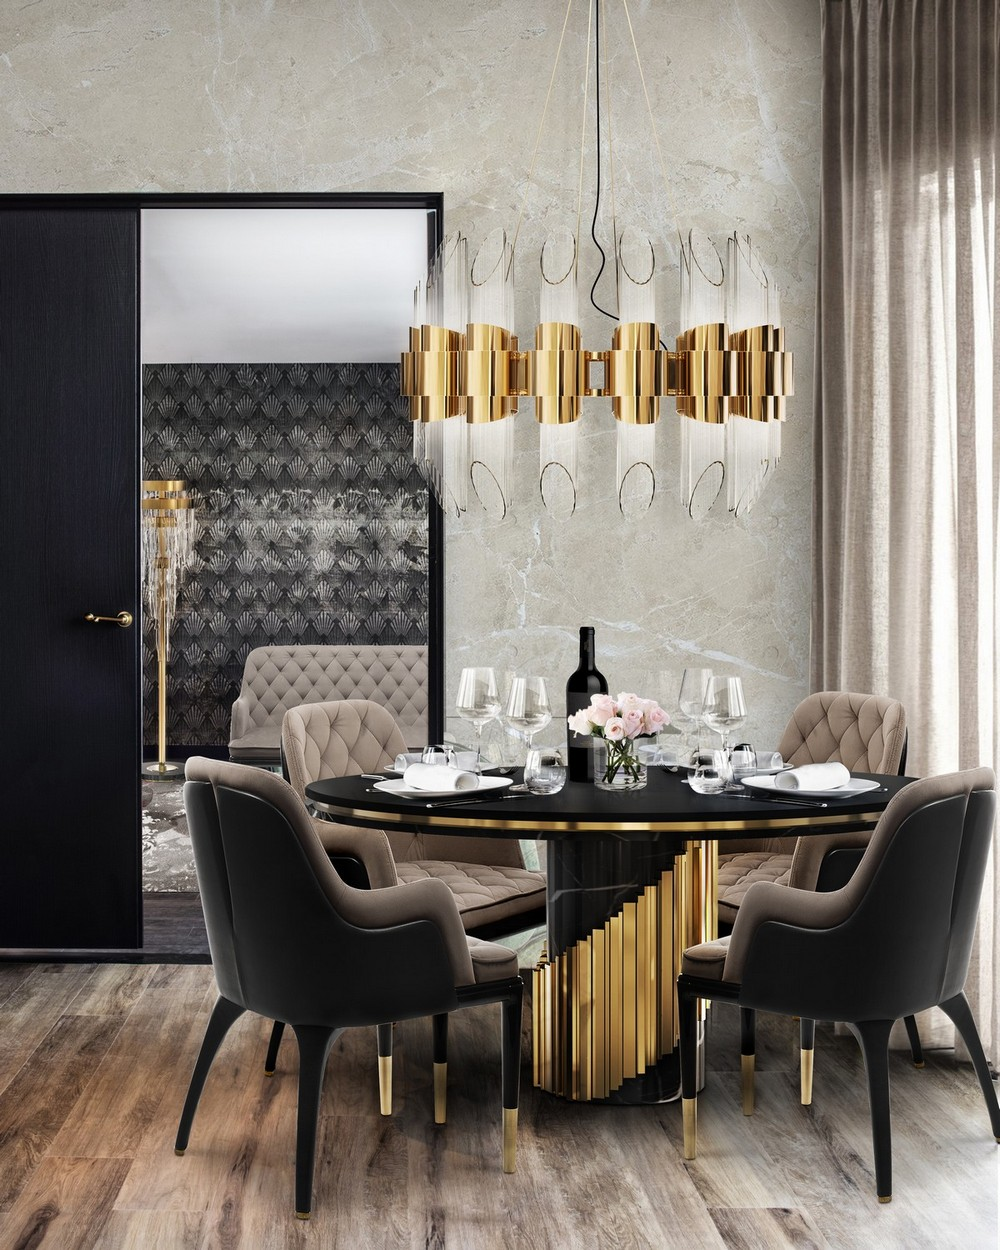 top interior designers Shop The Look: Dining Room Ideas By Top Interior Designers (Part II) katharine2